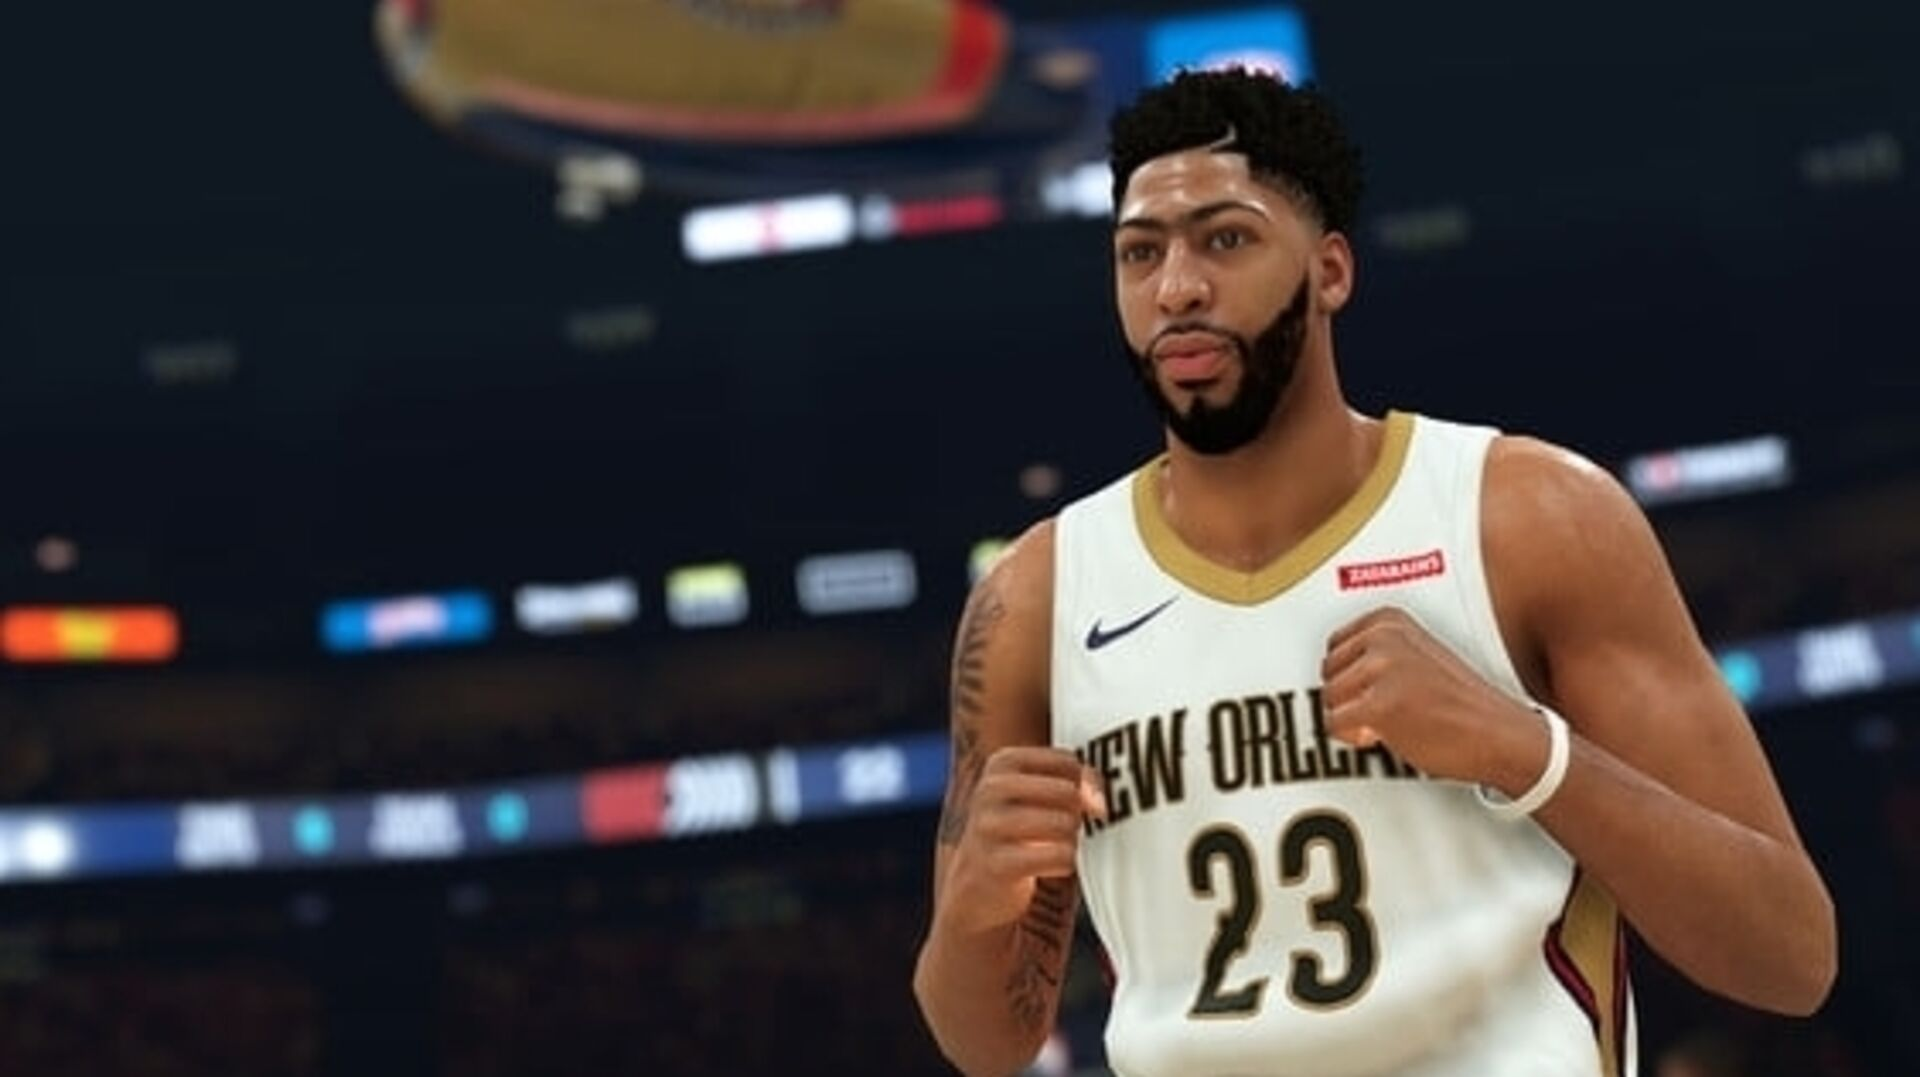 NBA 2K19 fans are unhappy at an increase in the number of in